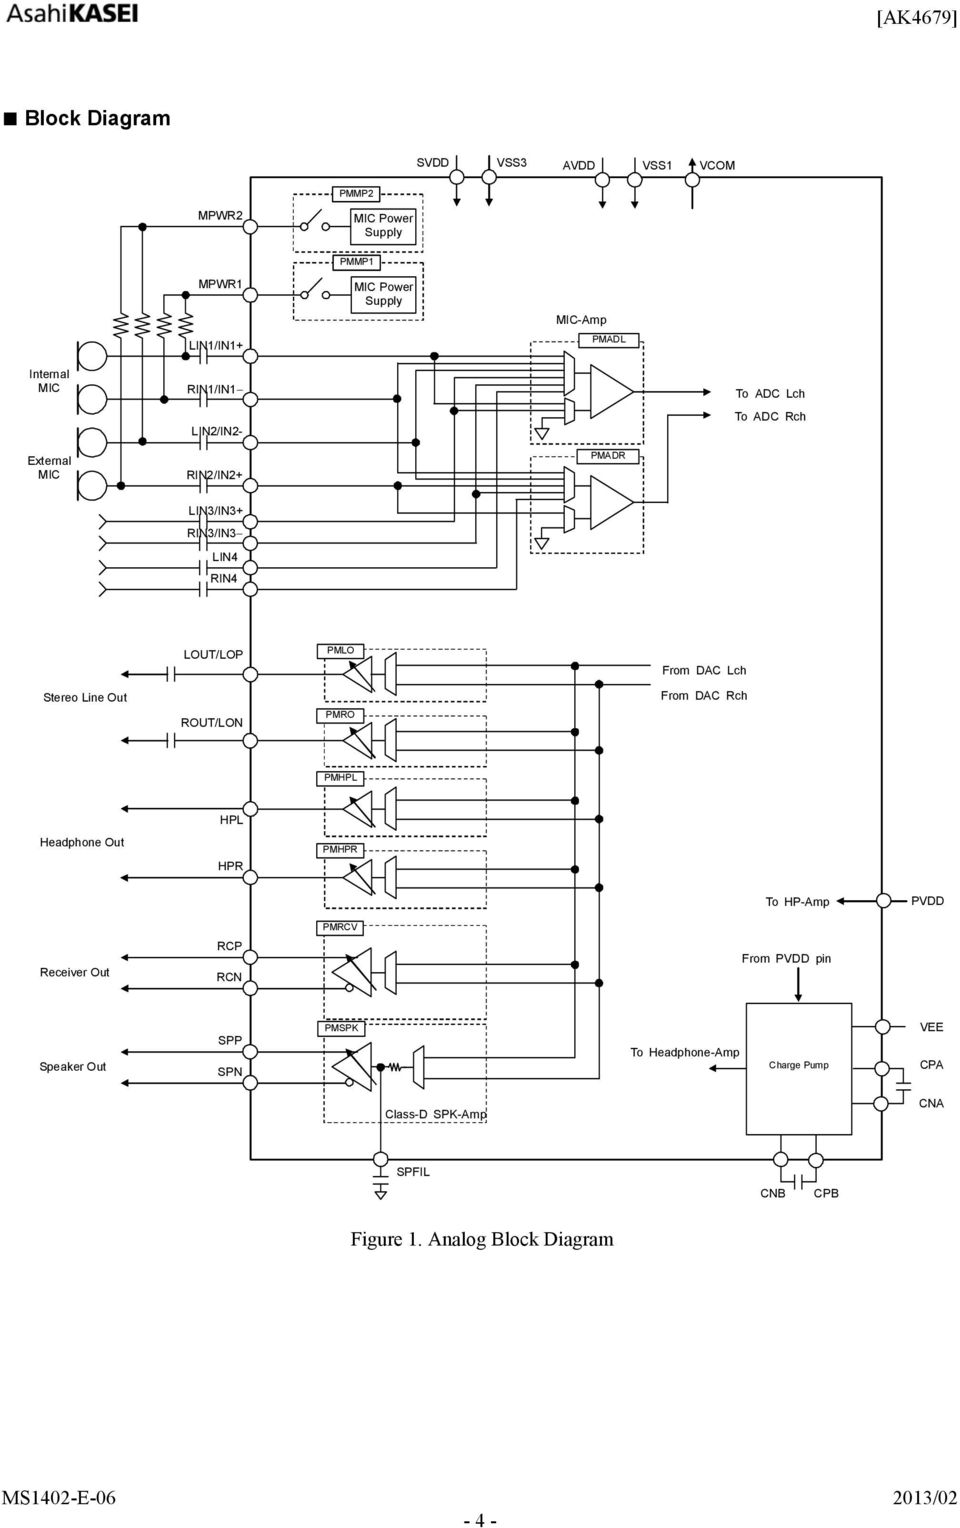 Ak Bit Stereo Codec With Dsp And Mic Rcv Hp Spk Line Amp Pdf Figure 1 Balance Input Pre Microphone Amplifier Circuit Dac Lch Out From Rch Rout Lon Pmro Pmhpl Hpl Headphone